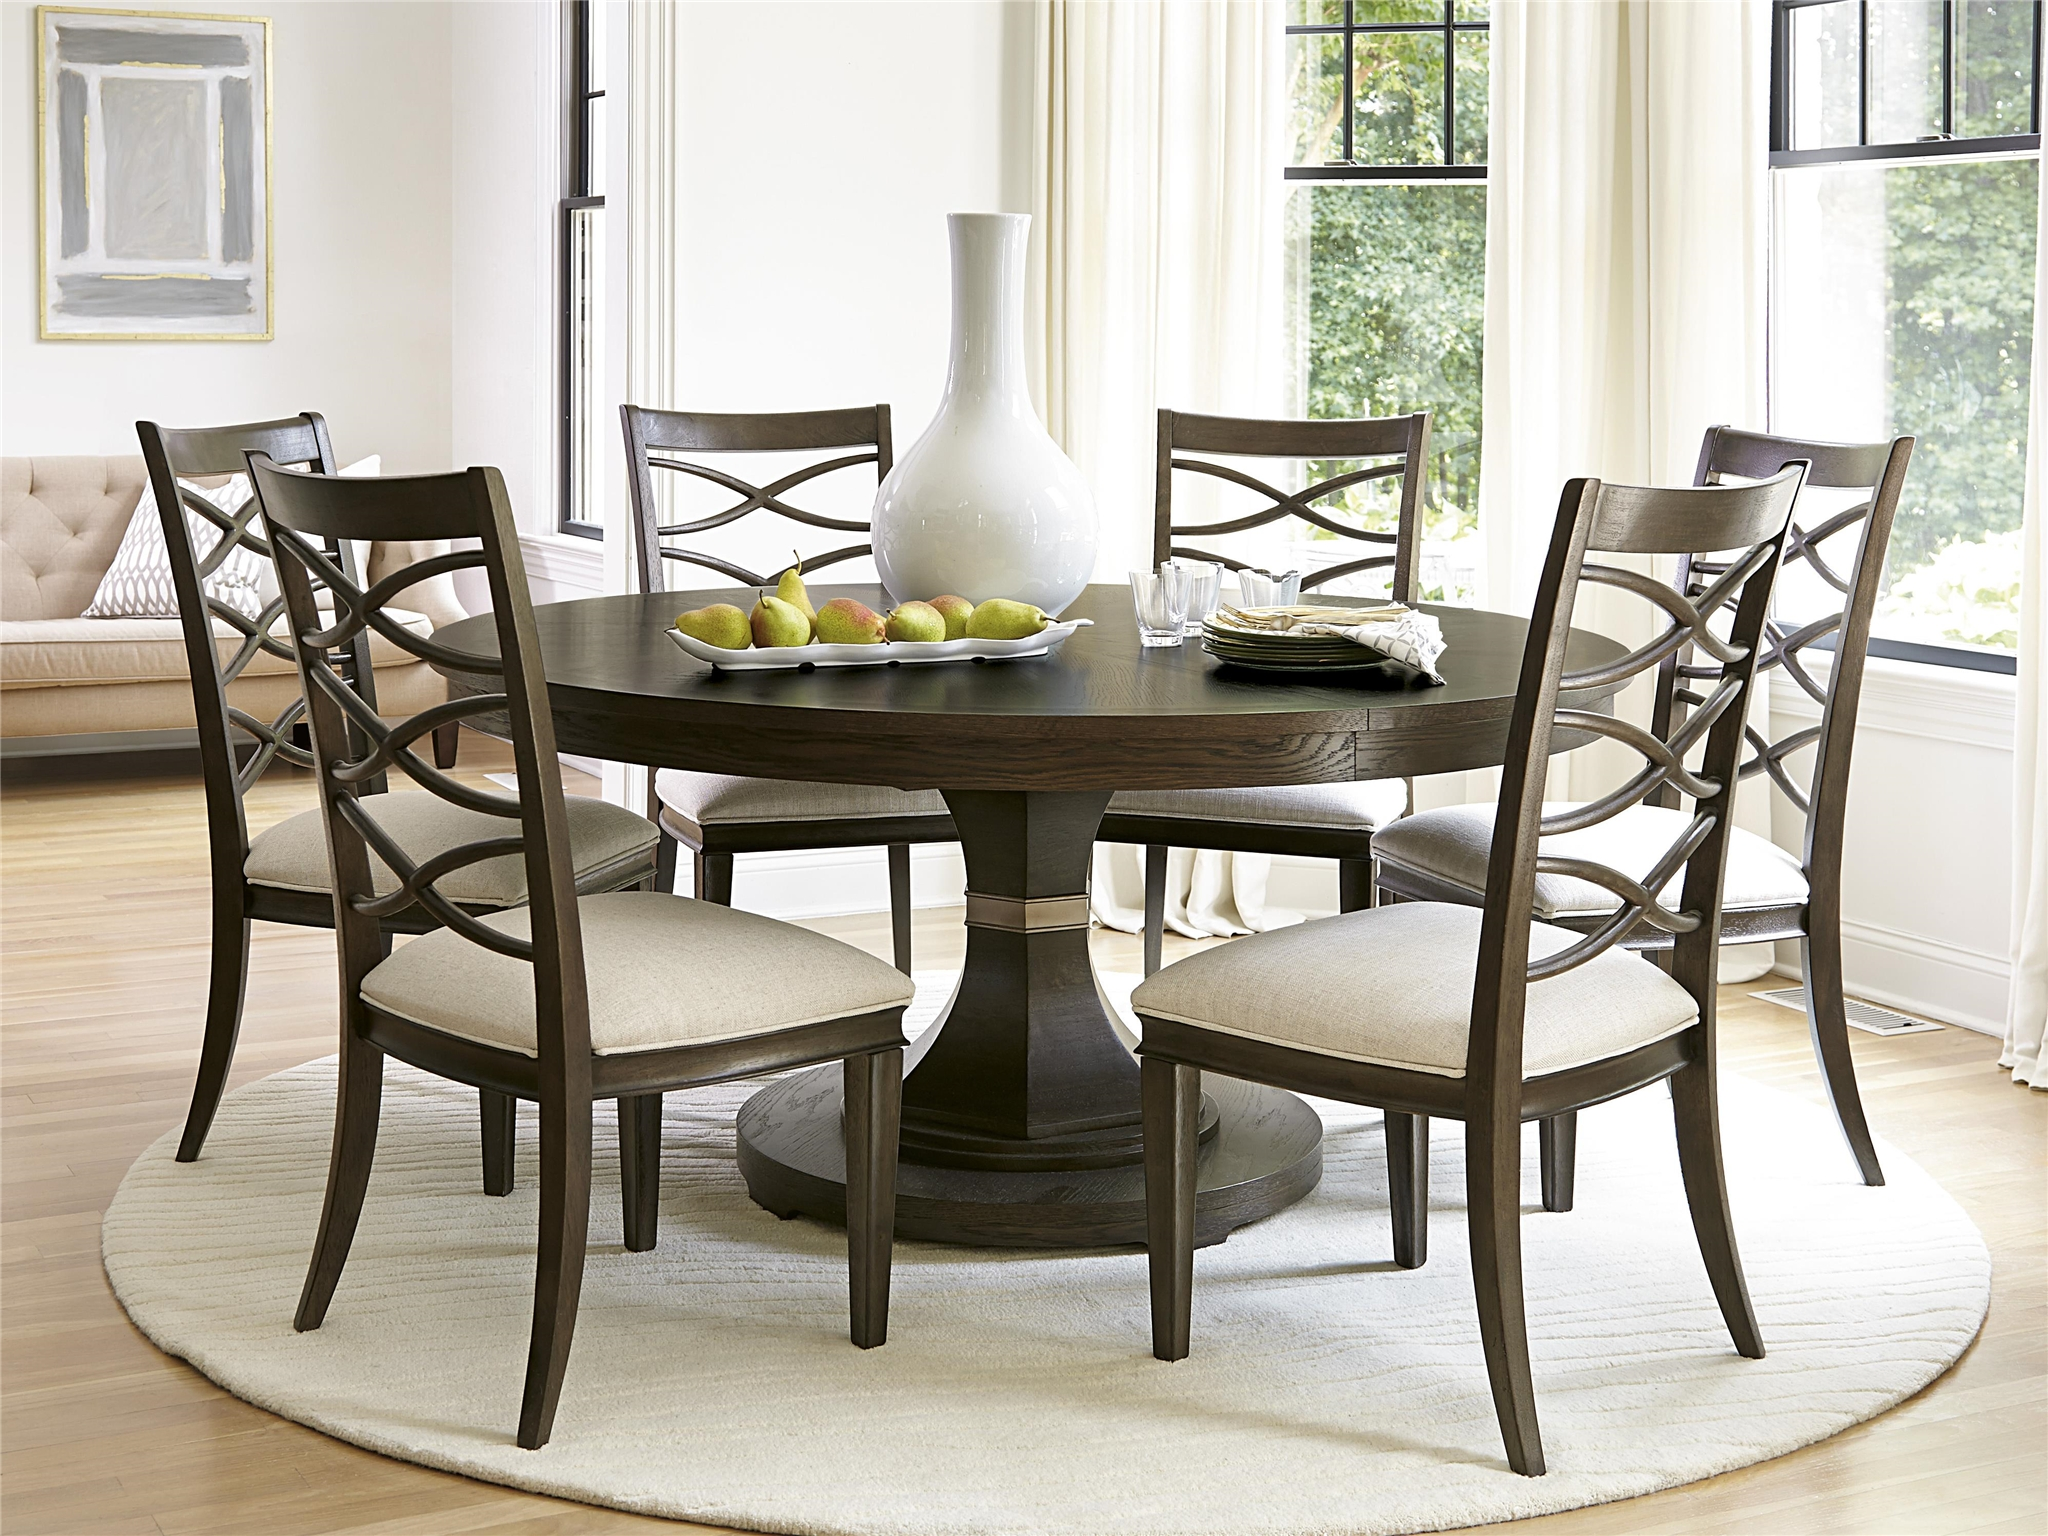 Round Country Kitchen Table Sets